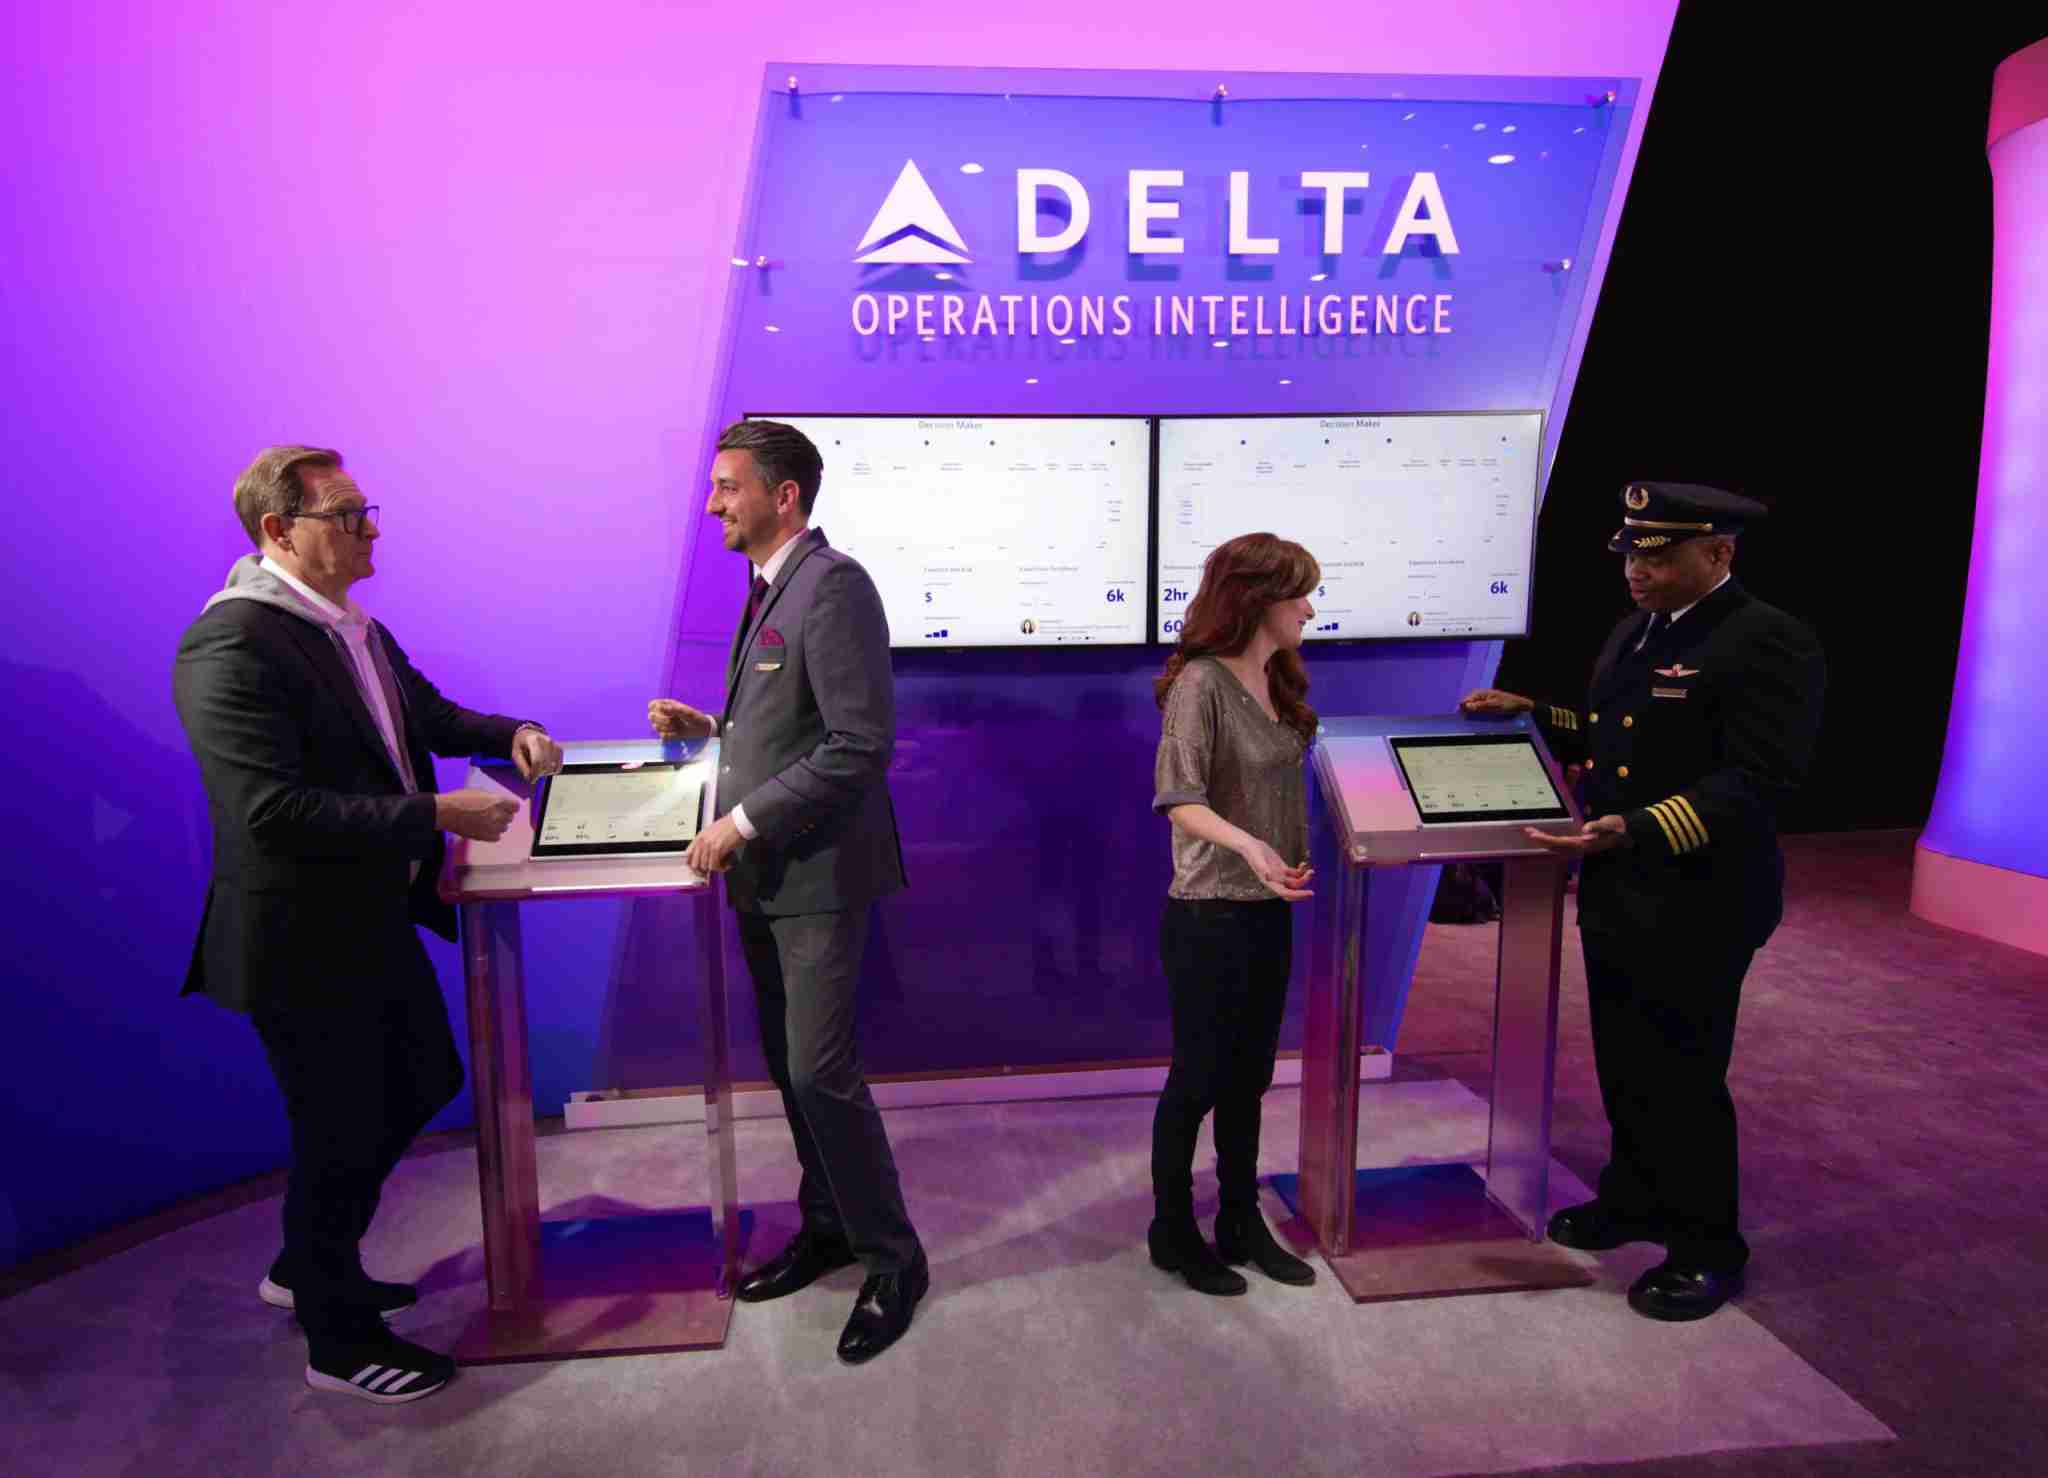 A Delta both at the CES 2020 show in Las Vegas shows off the company